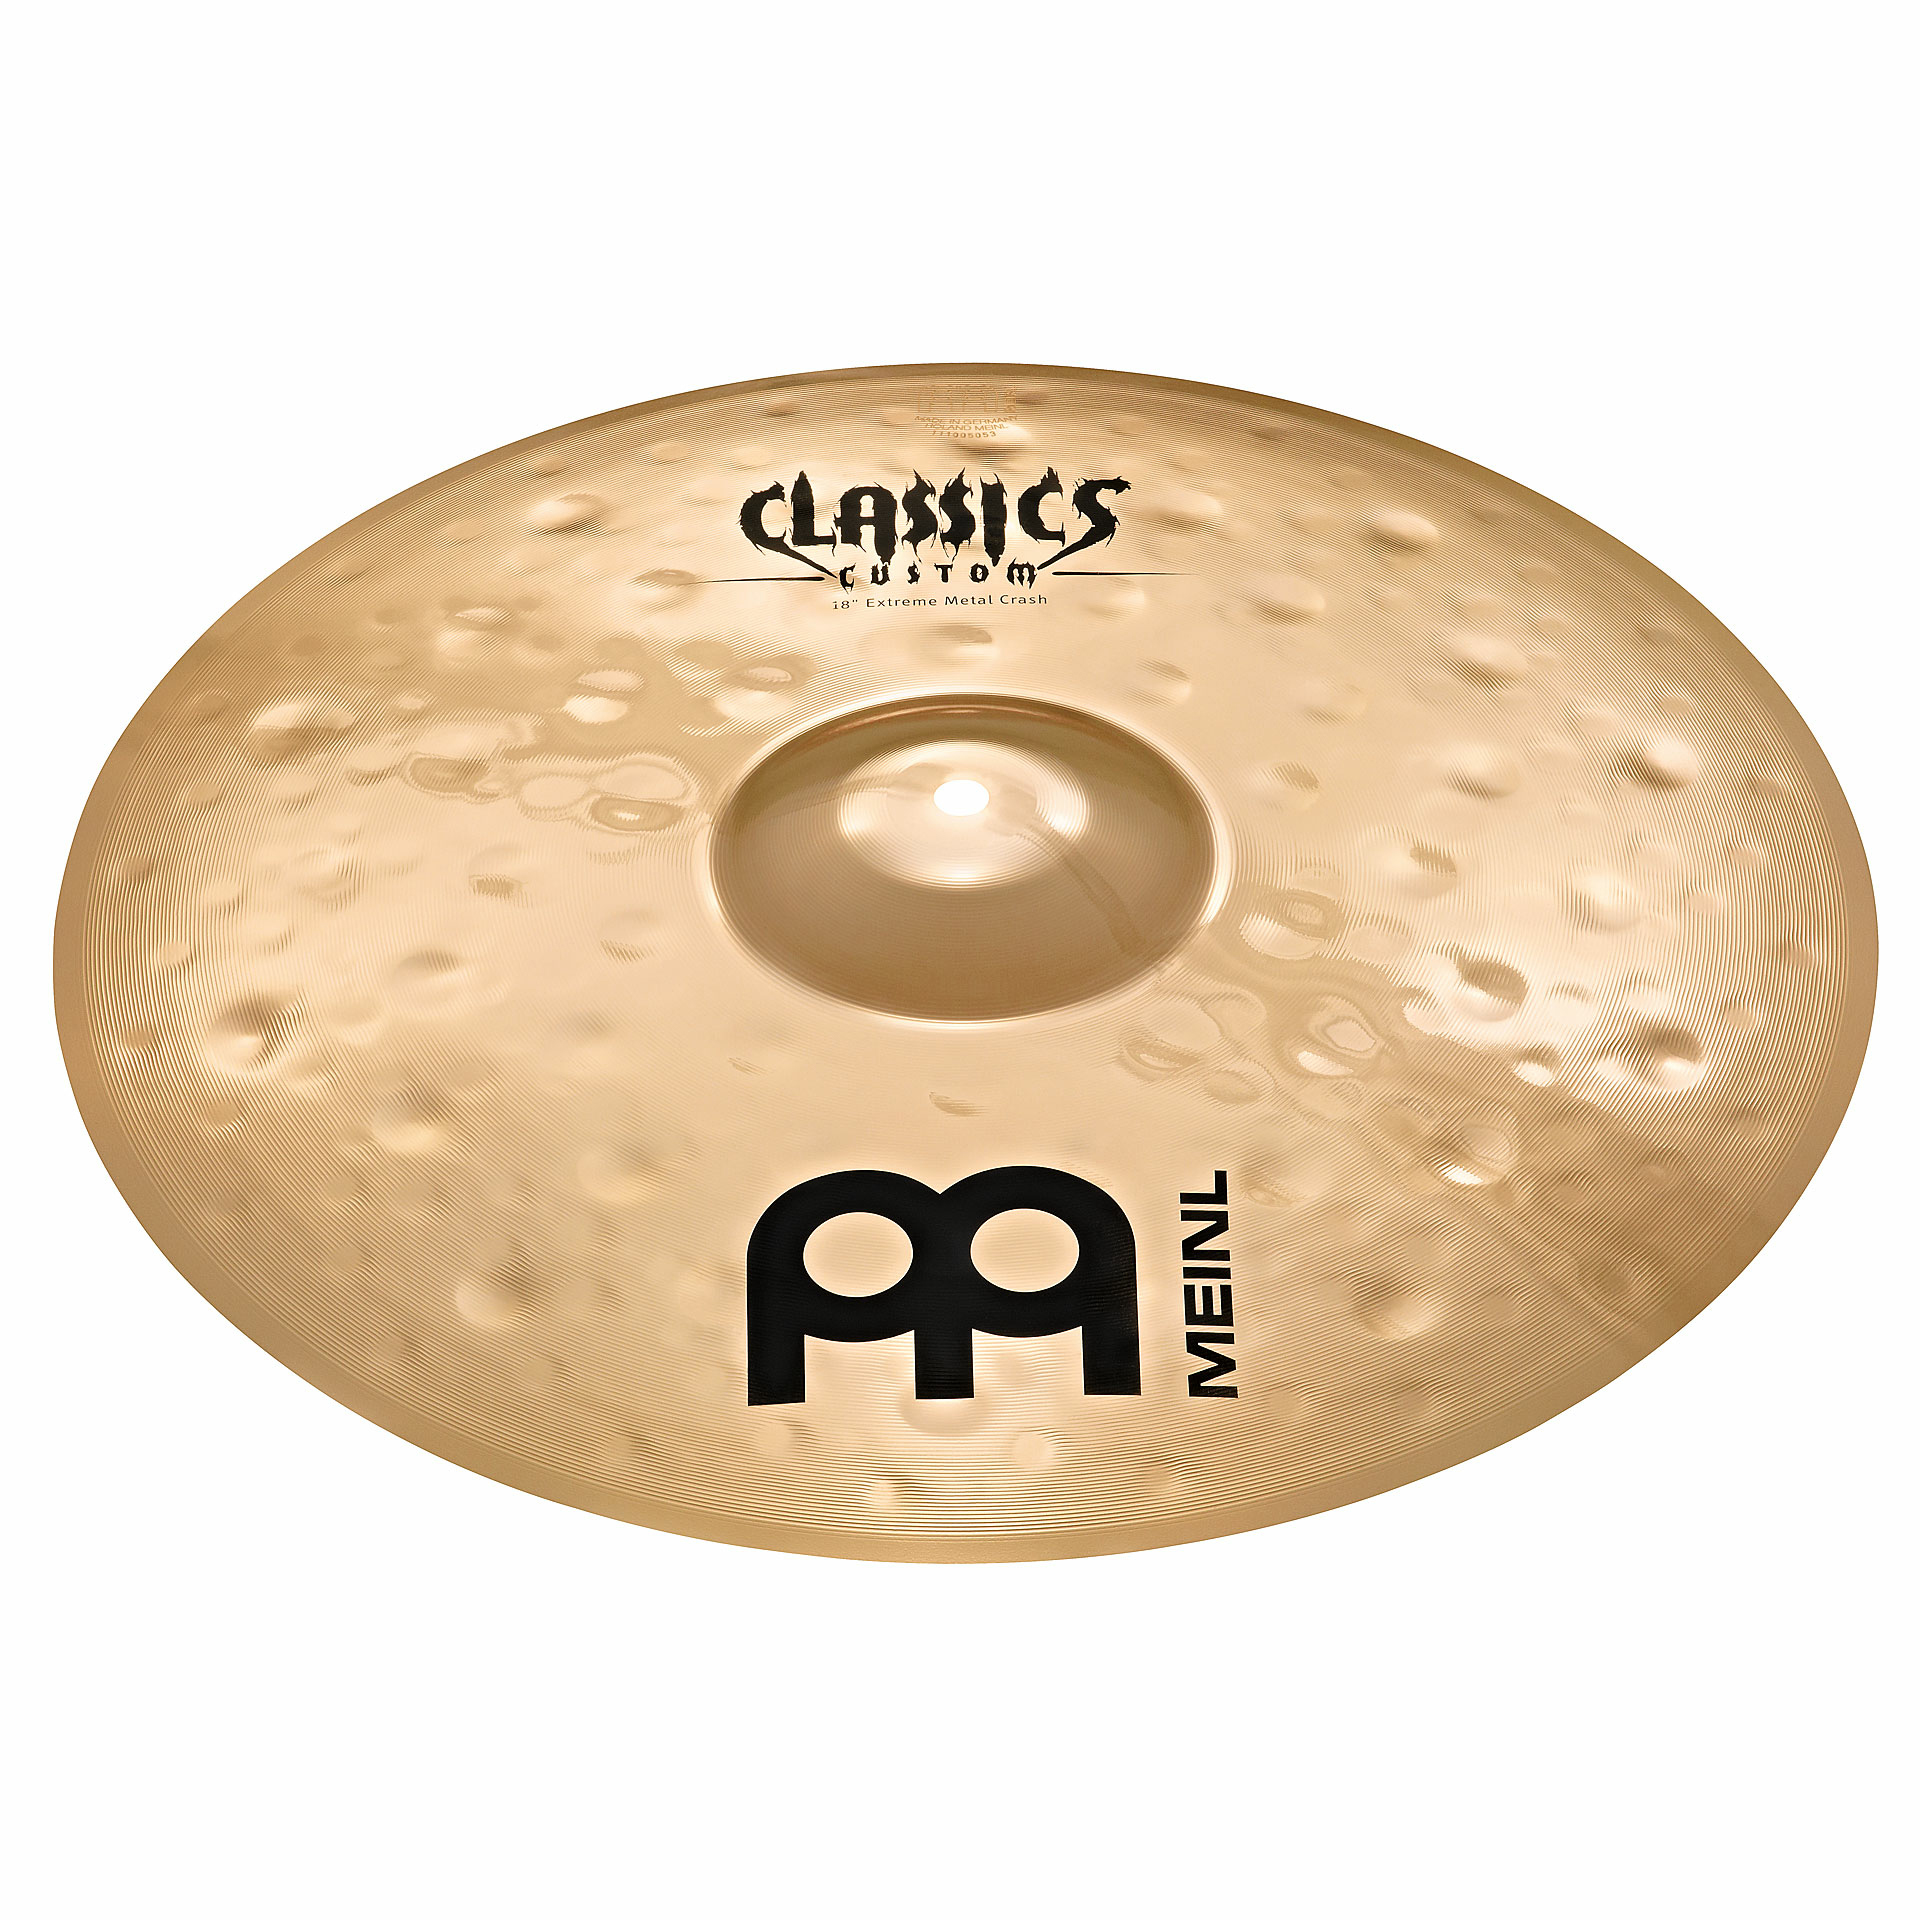 "Meinl 18"" Classics Custom Extreme Metal Crash Cymbal"